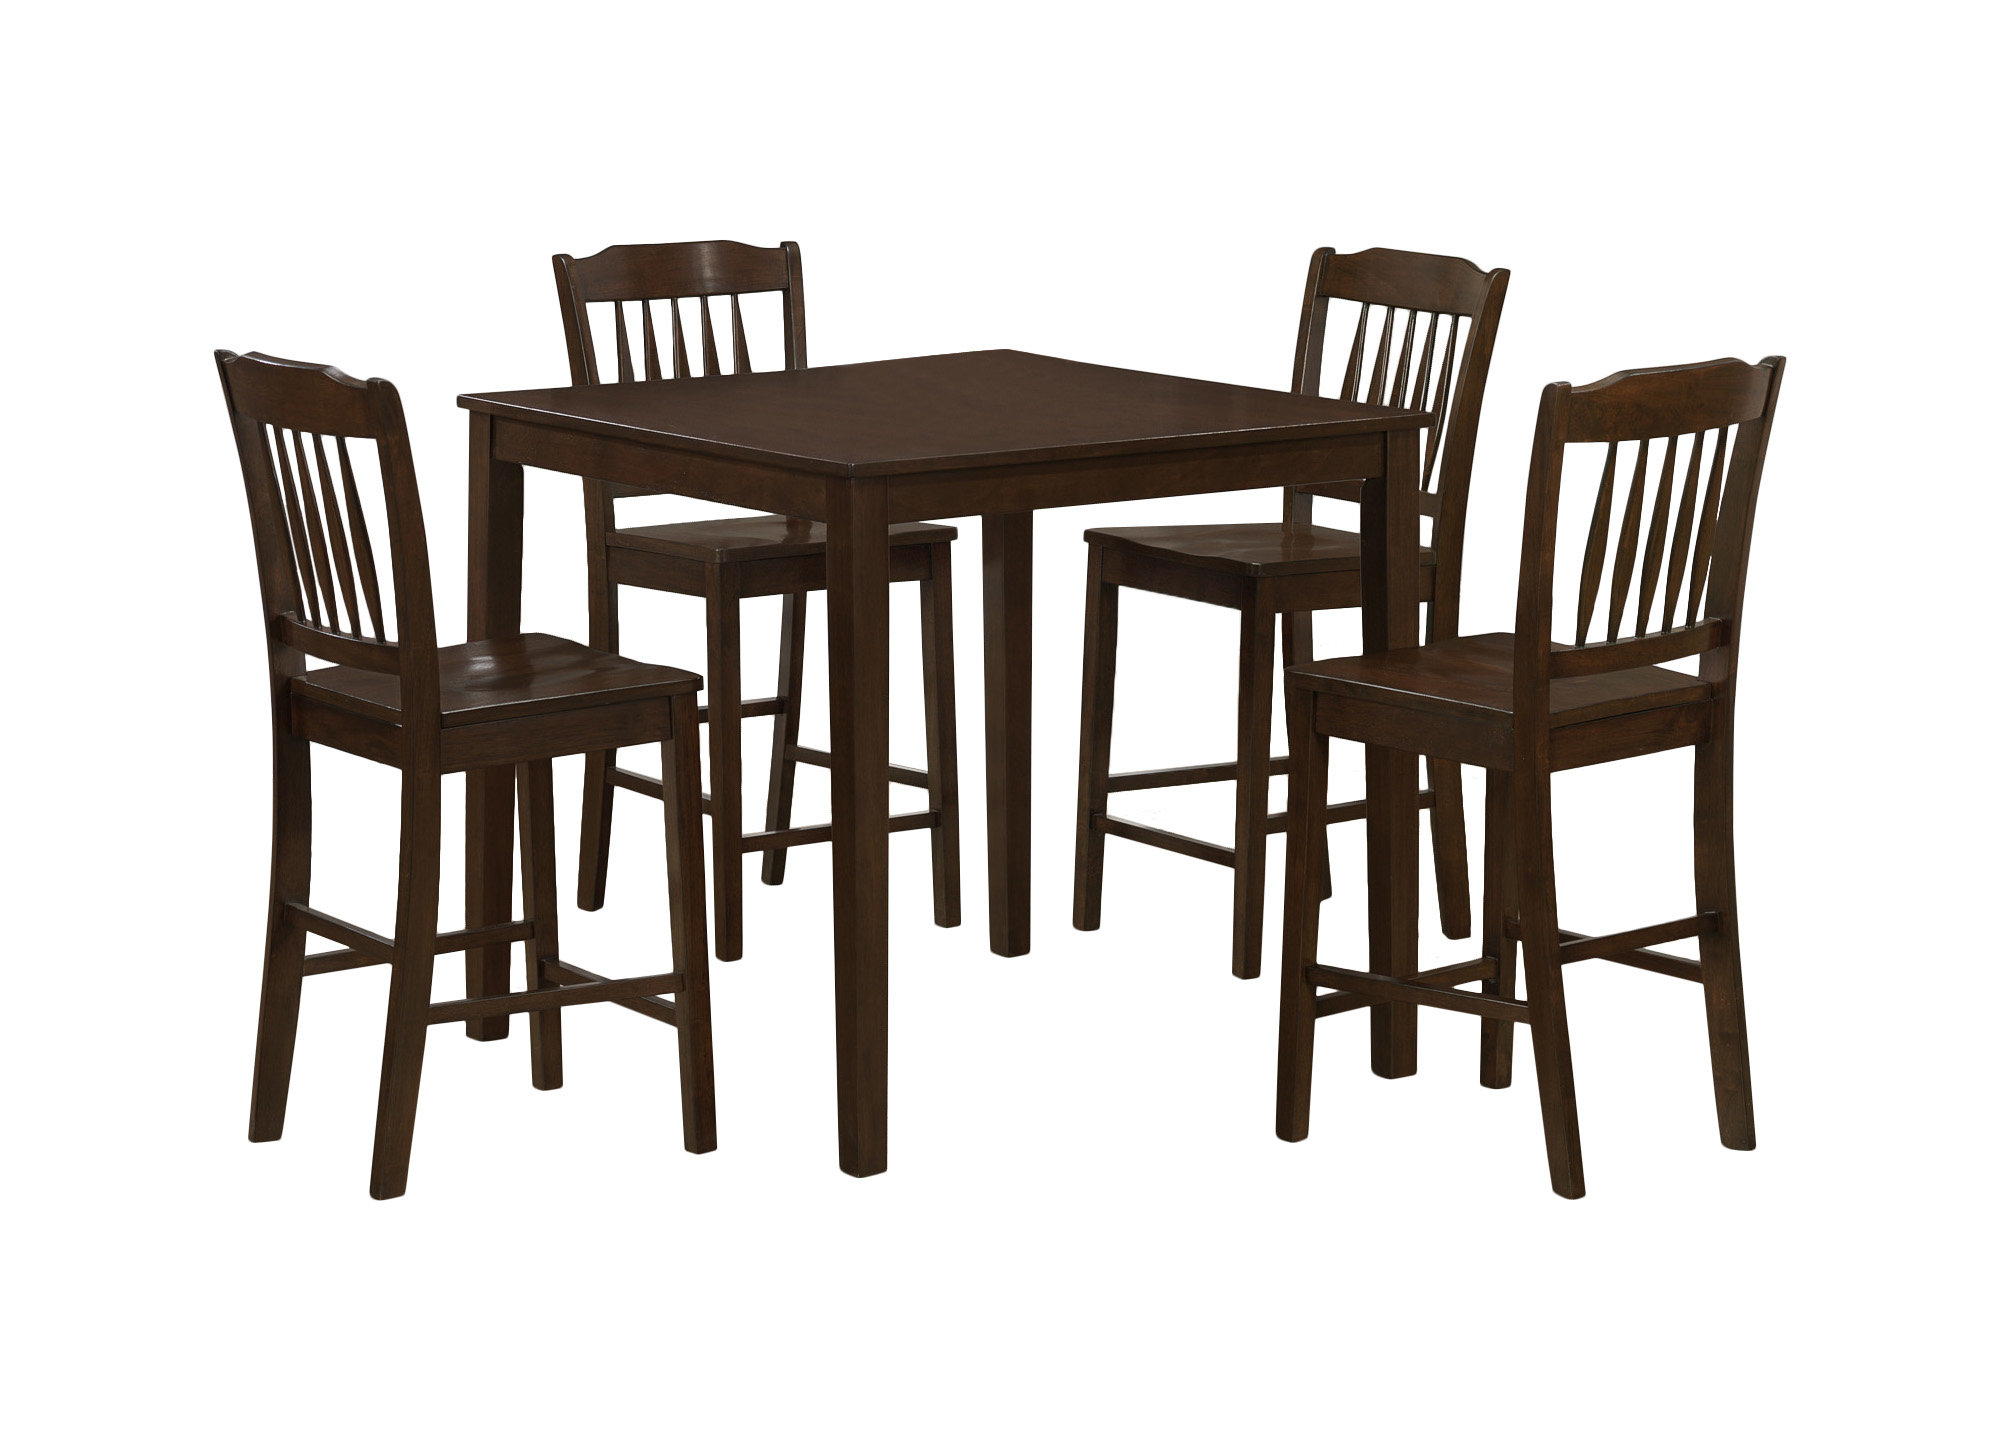 Favorite Saintcroix 3 Piece Dining Sets Pertaining To Monarch Specialties Inc (View 15 of 25)